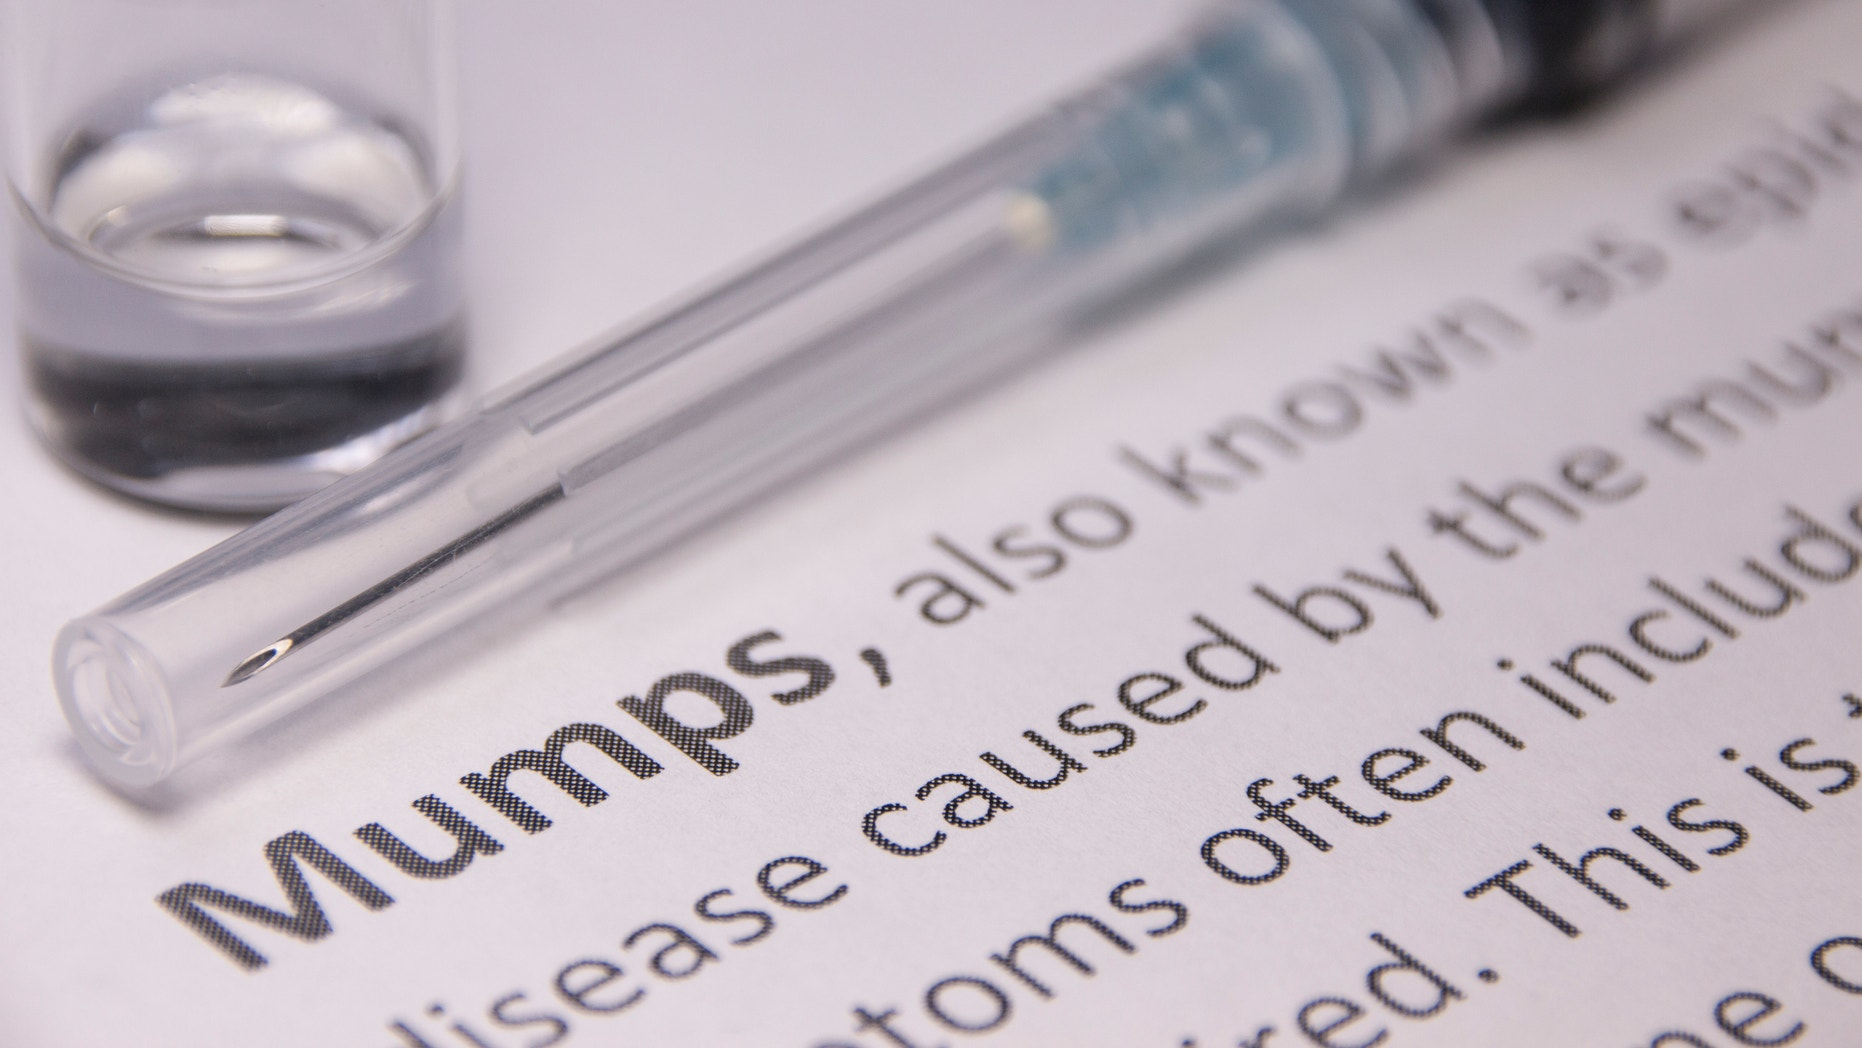 Mumps (epidemic parotitis) Vaccination